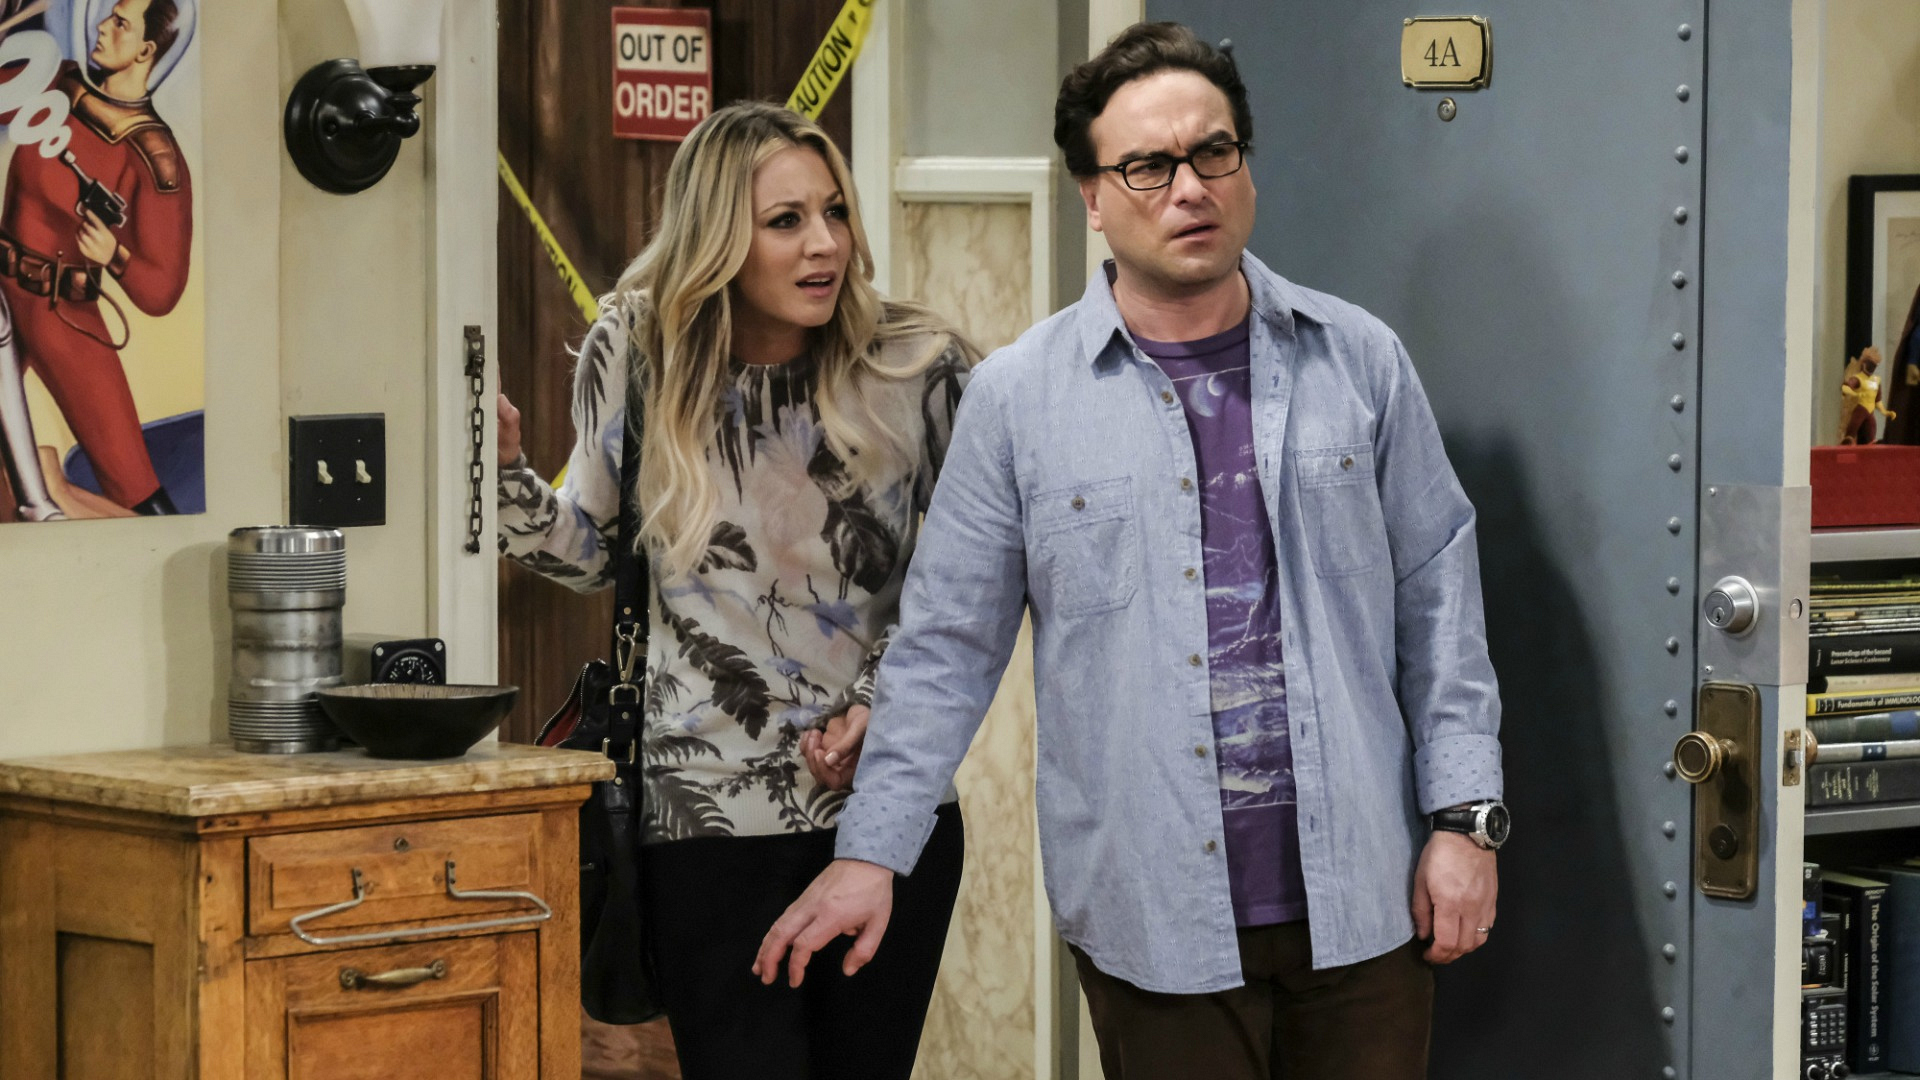 Leonard and Penny walk into a shocking situation.